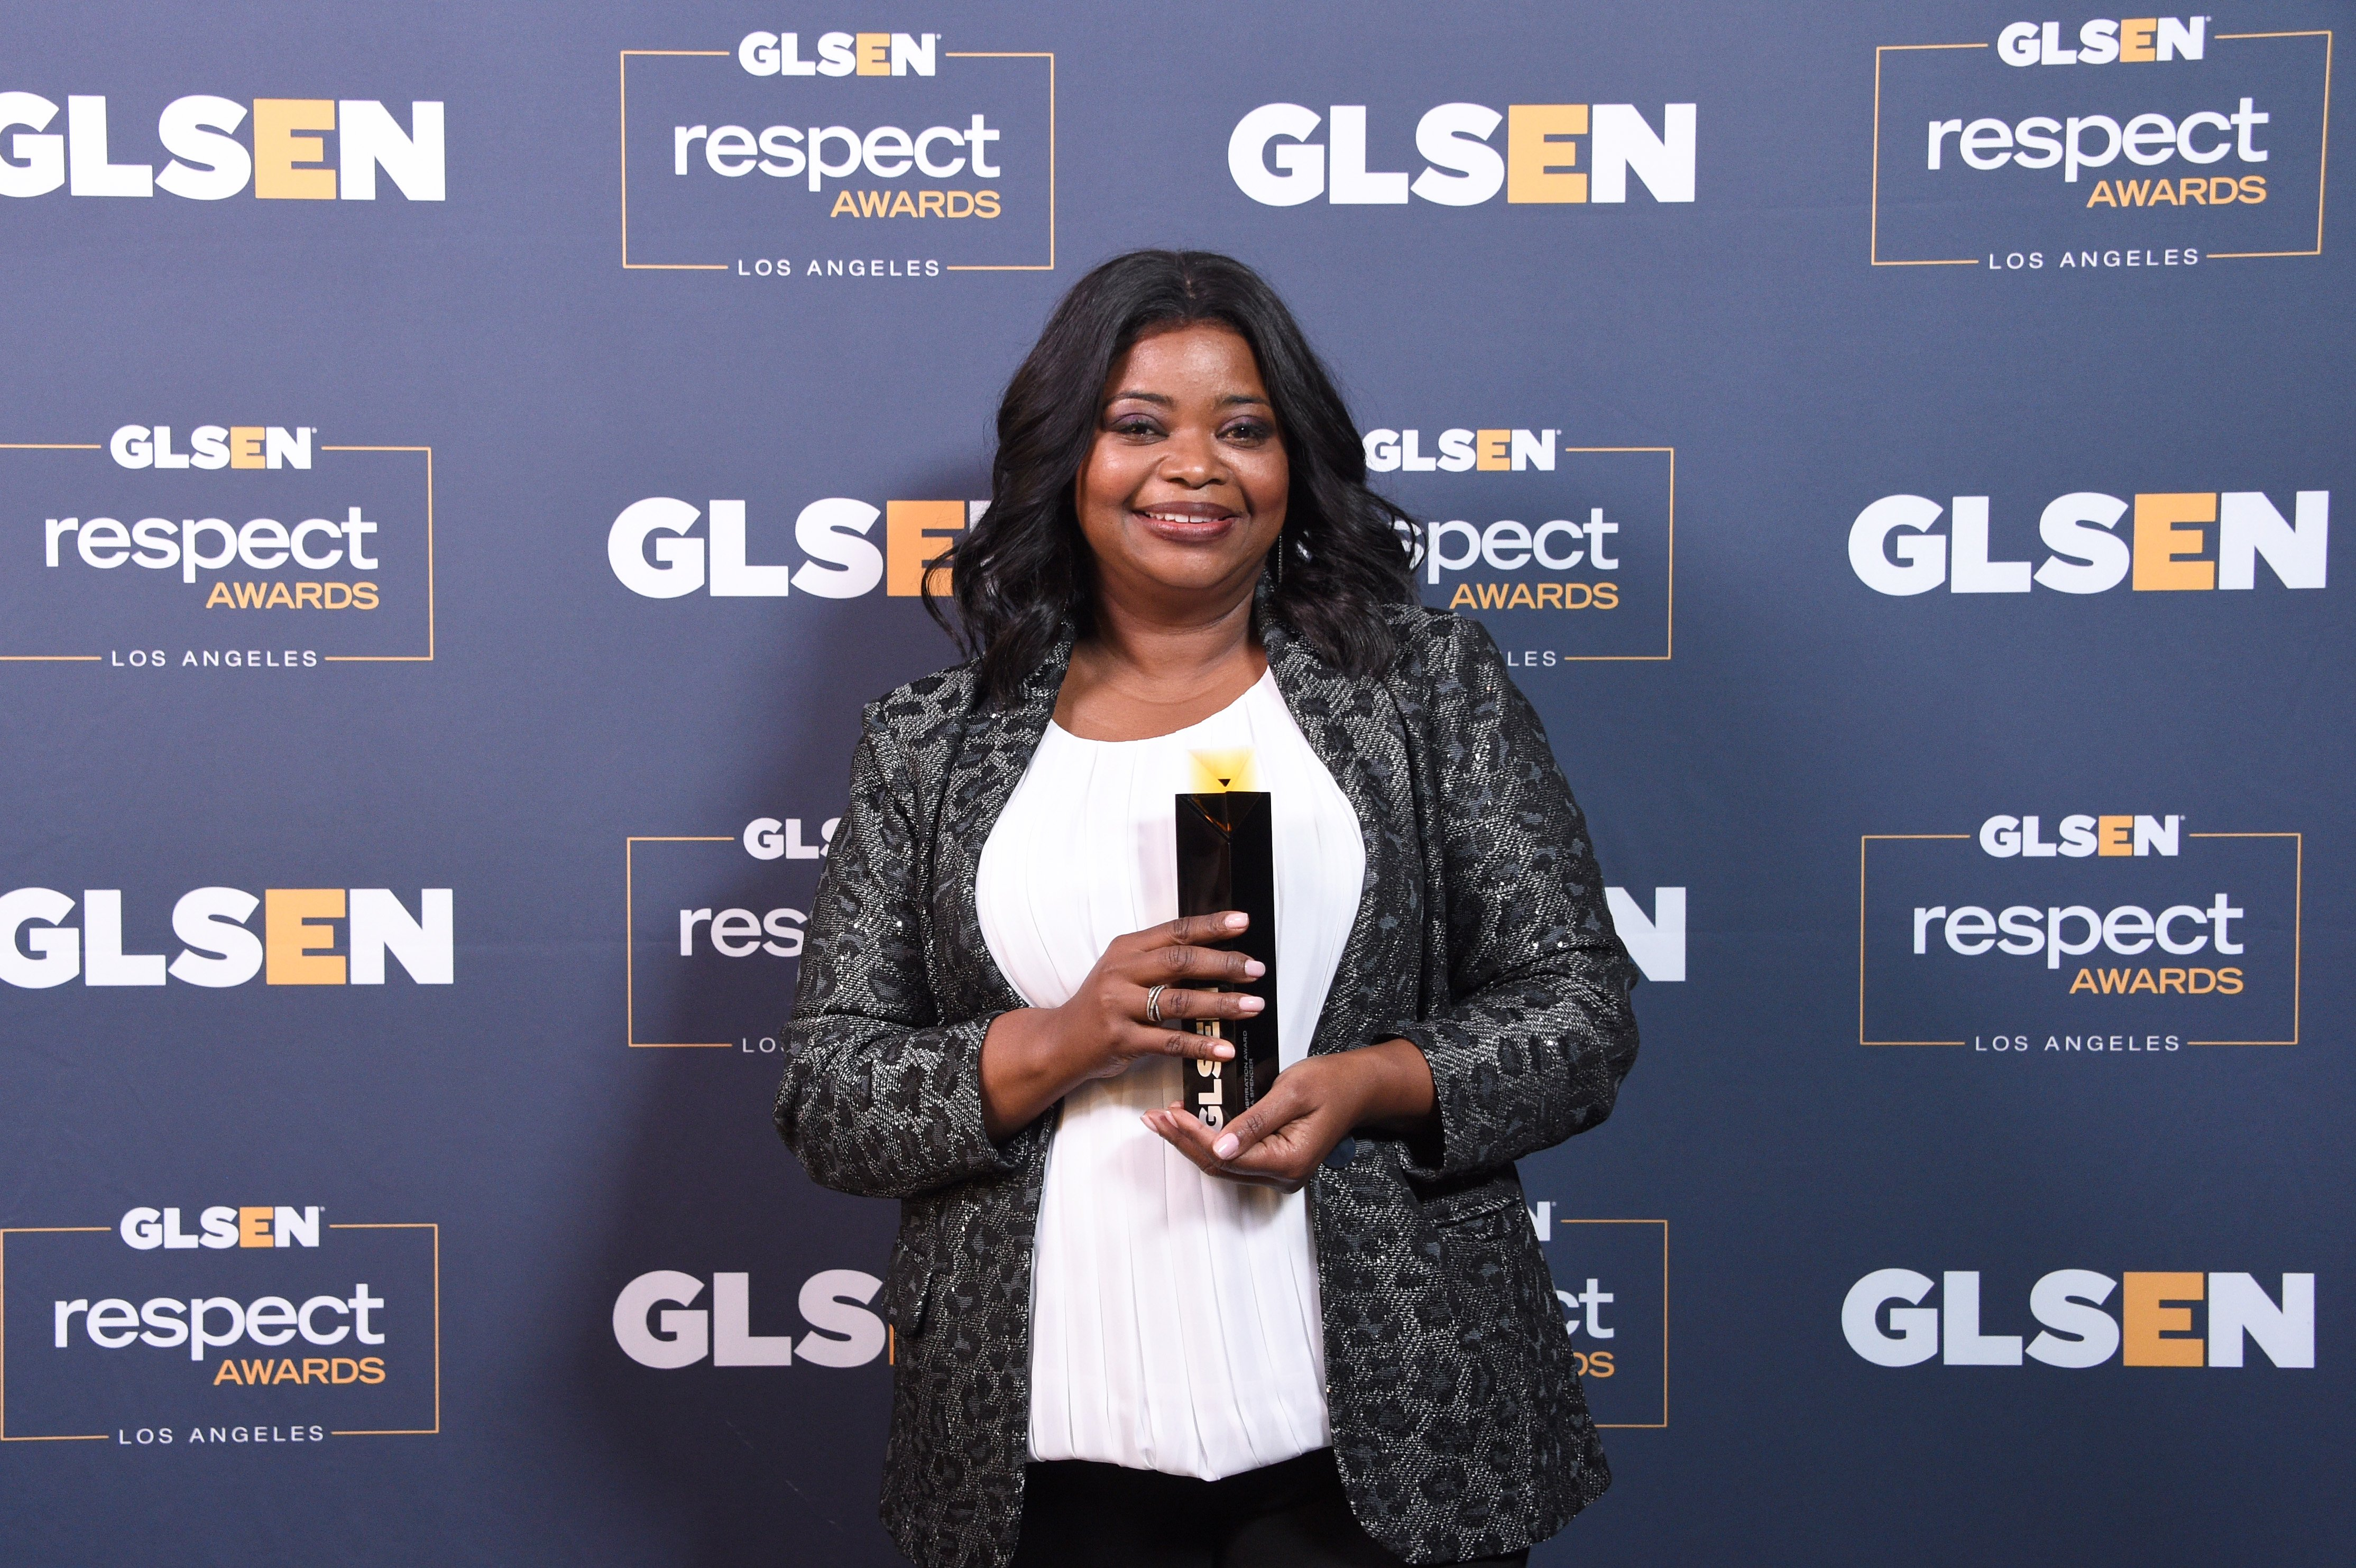 Octavia Spencer during a 2019 GLSEN Awards in Los Angeles. | Photo: Getty Images